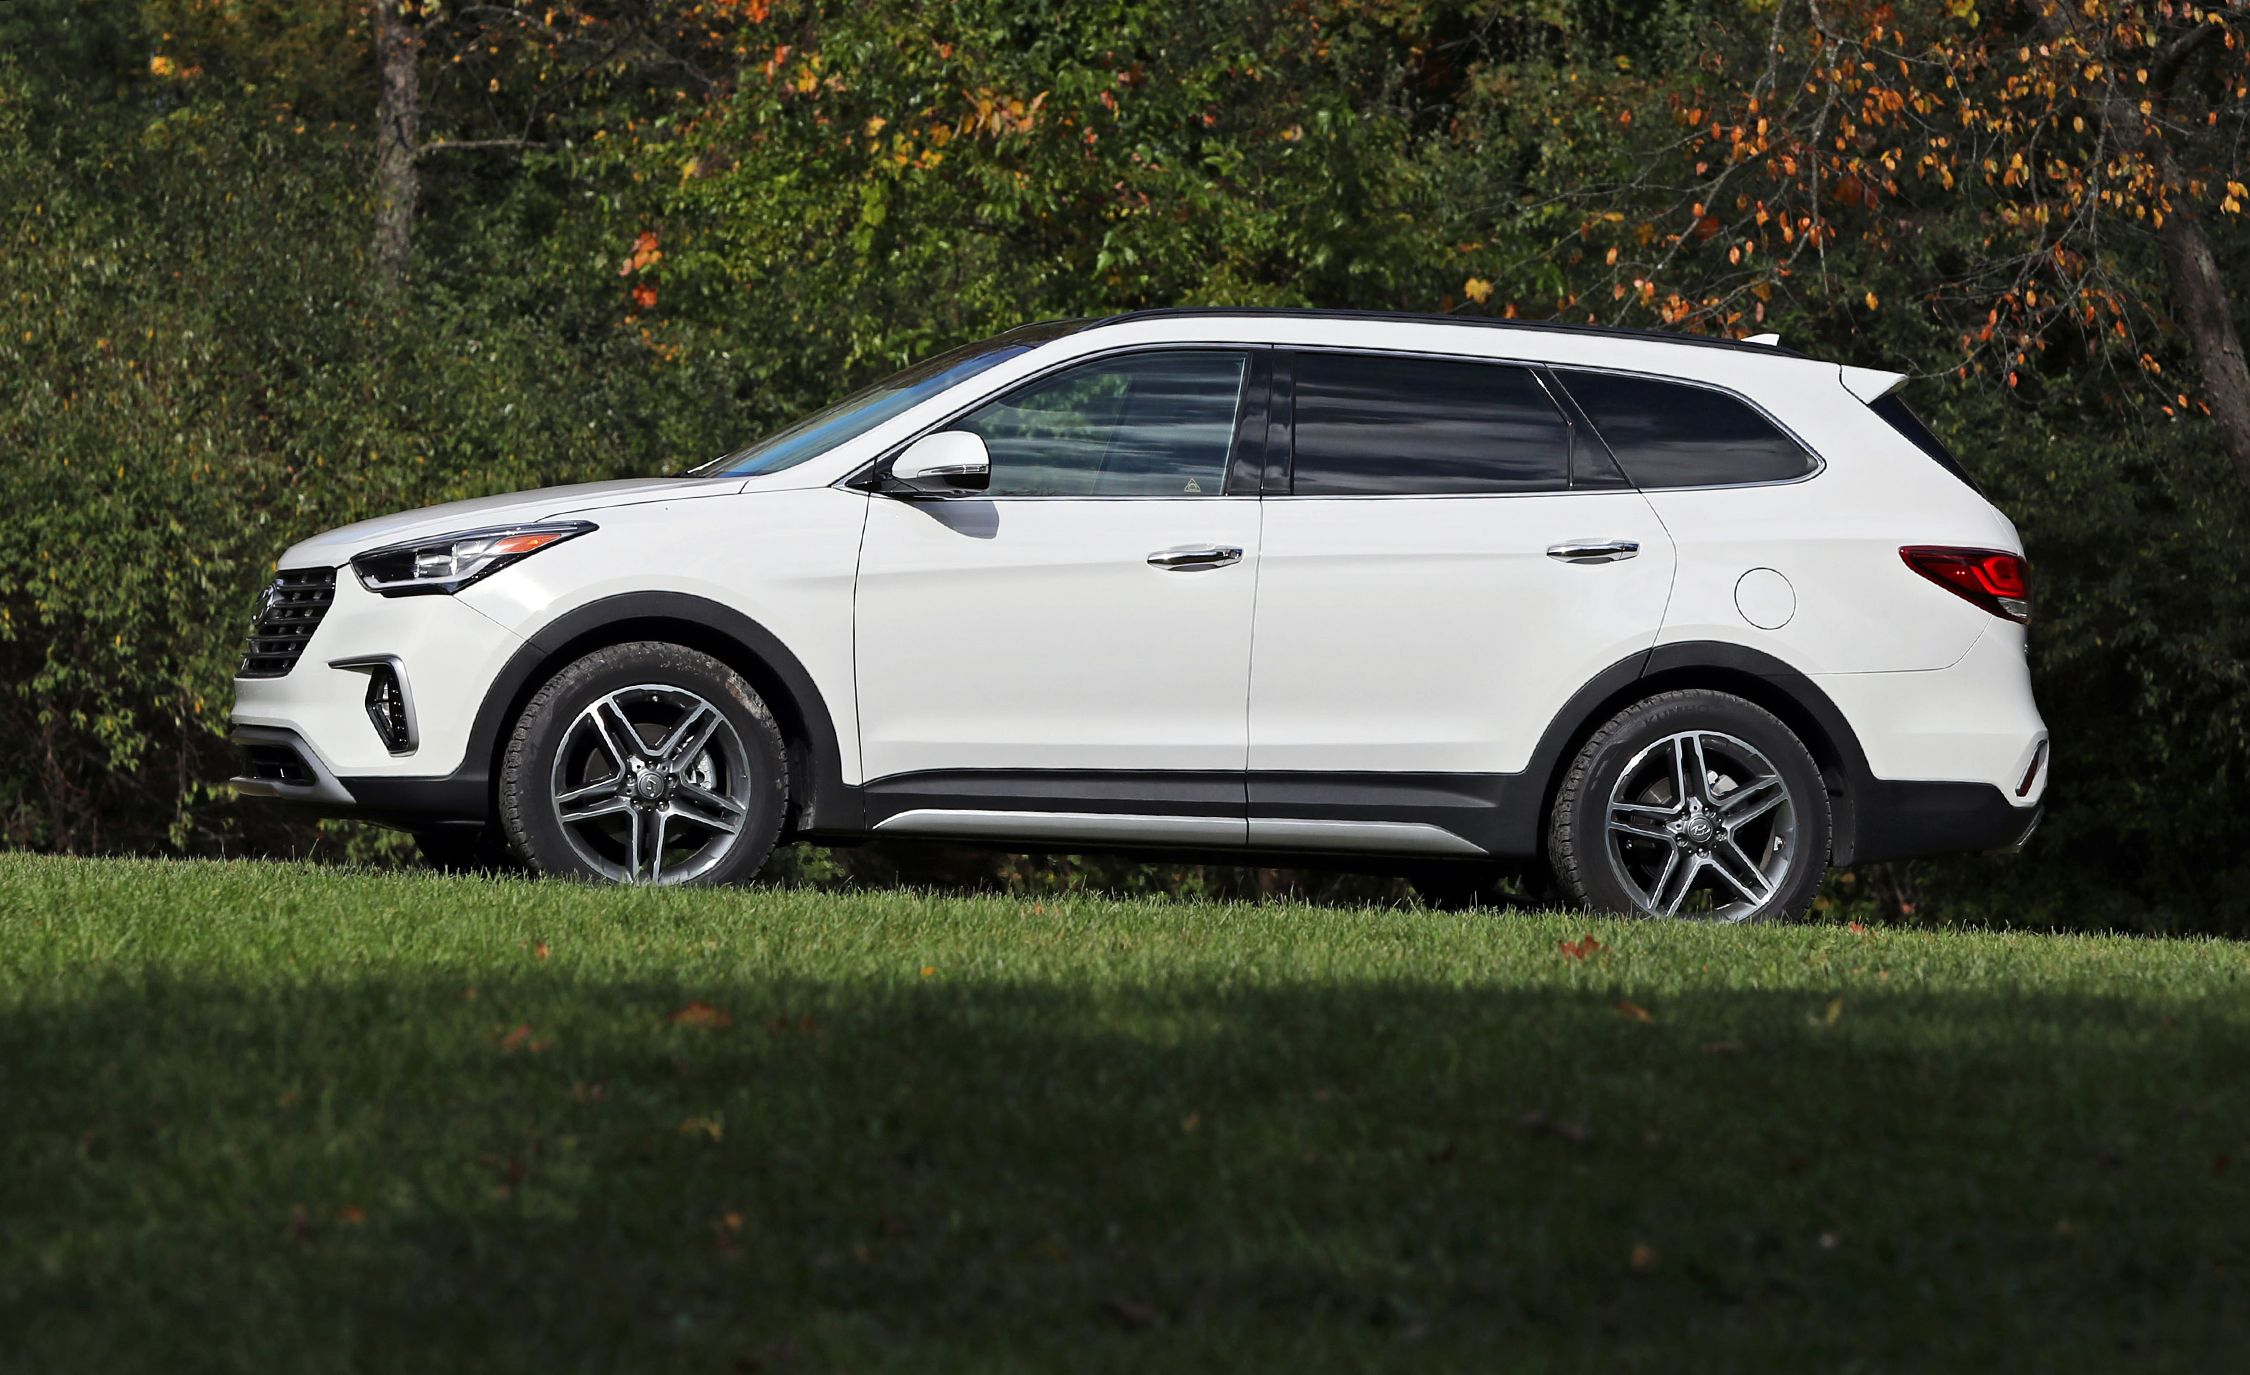 2018 Hyundai Santa Fe Safety And Driver Istance Review Car